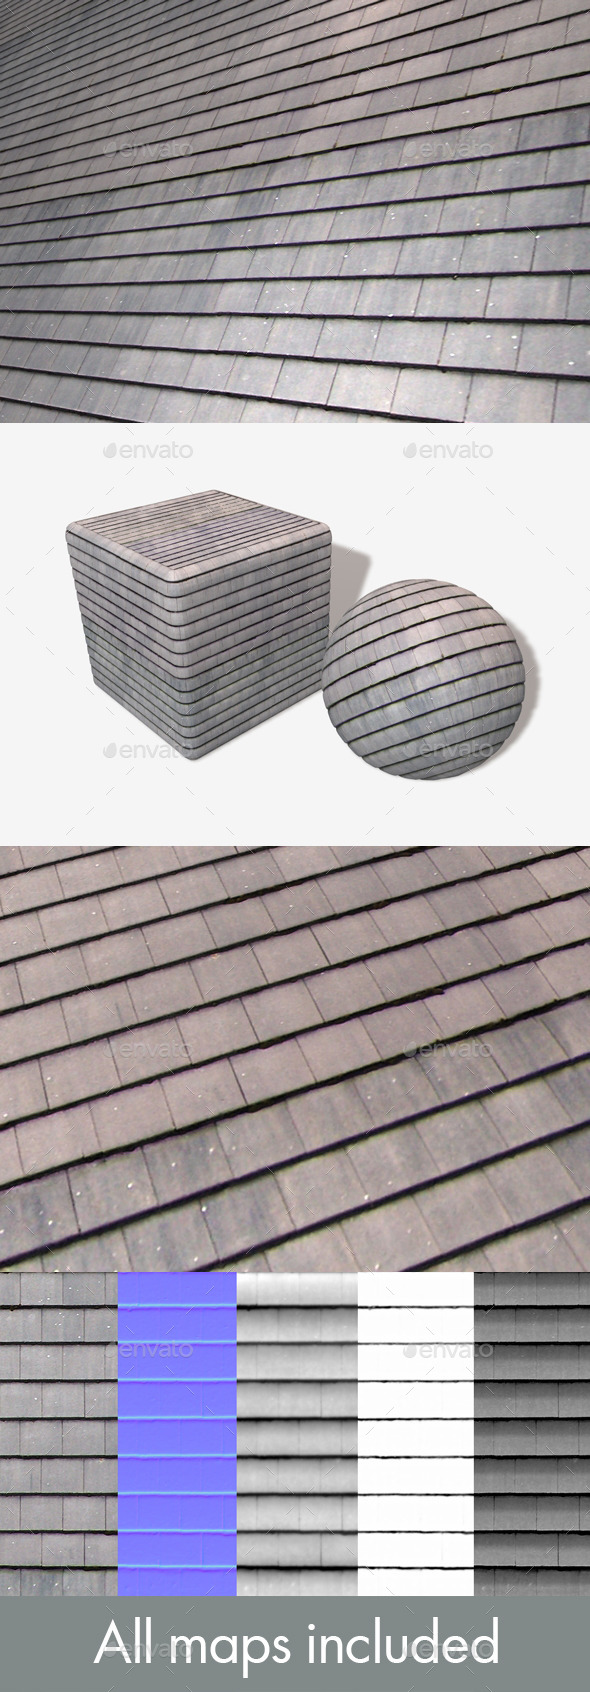 New Clean Roof Tiles Seamless Texture - 3DOcean Item for Sale